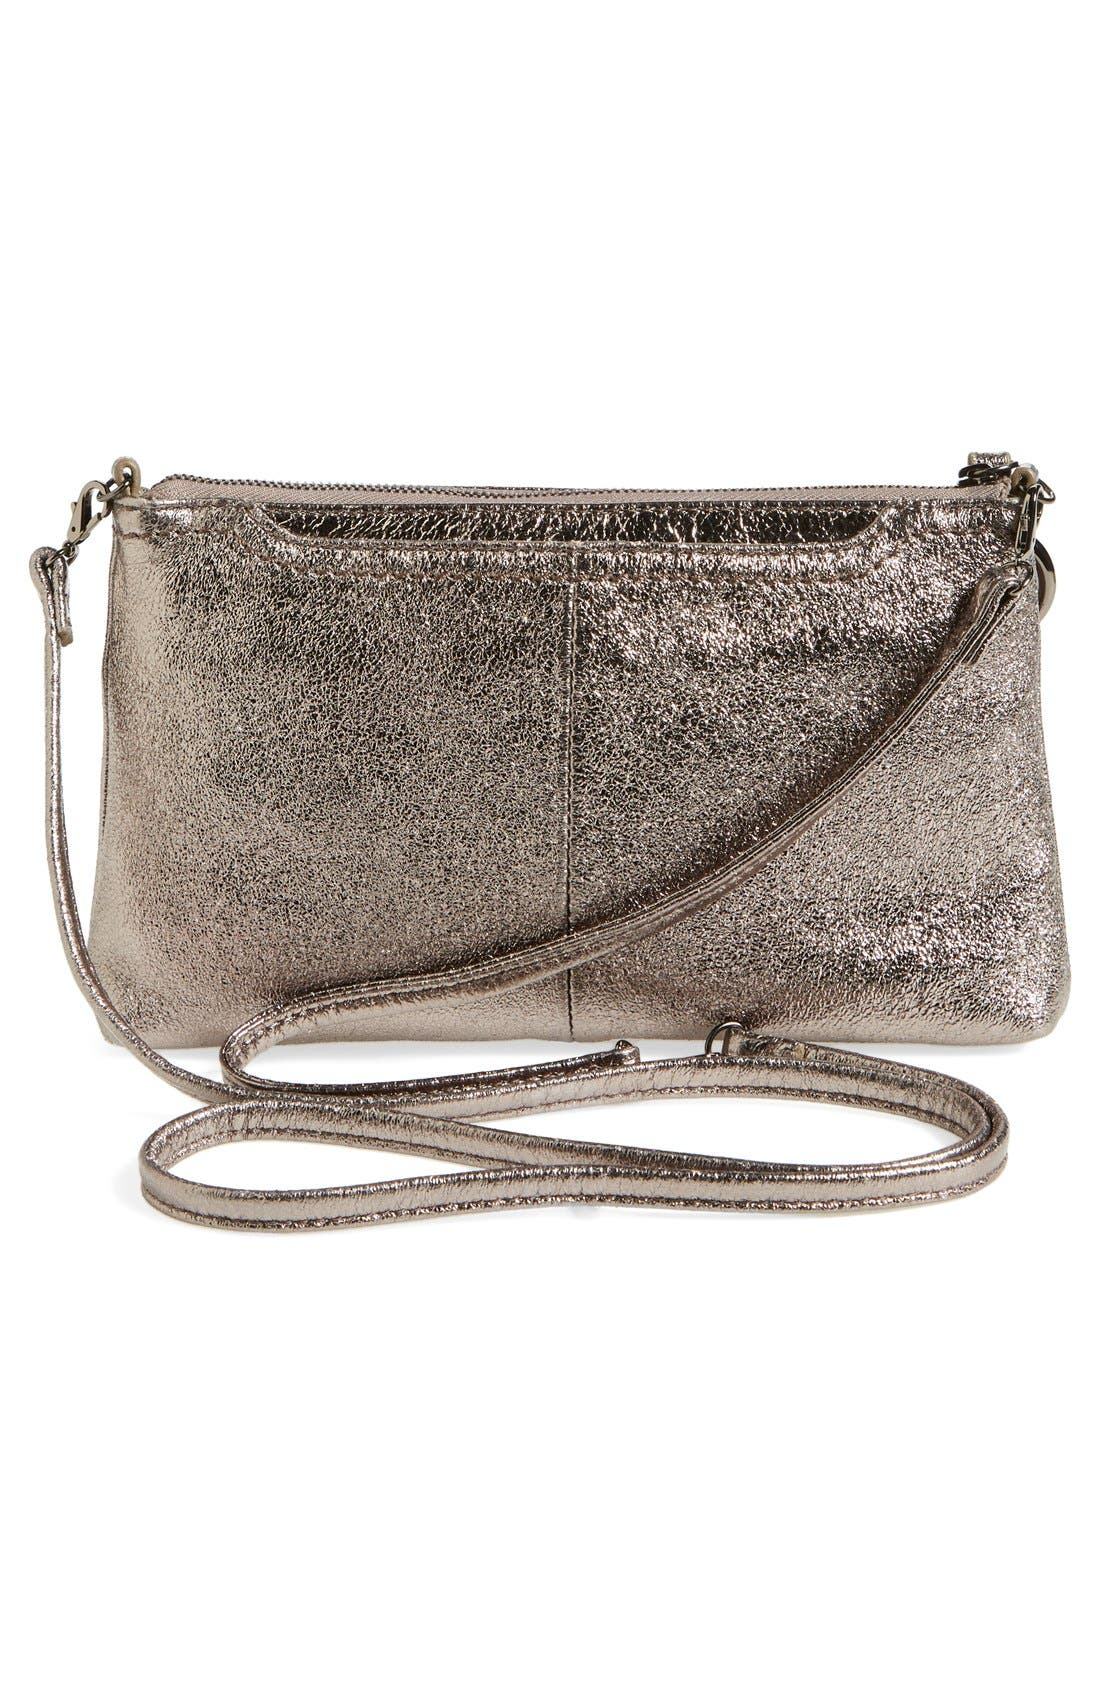 'Darcy' Leather Crossbody Bag,                             Alternate thumbnail 60, color,